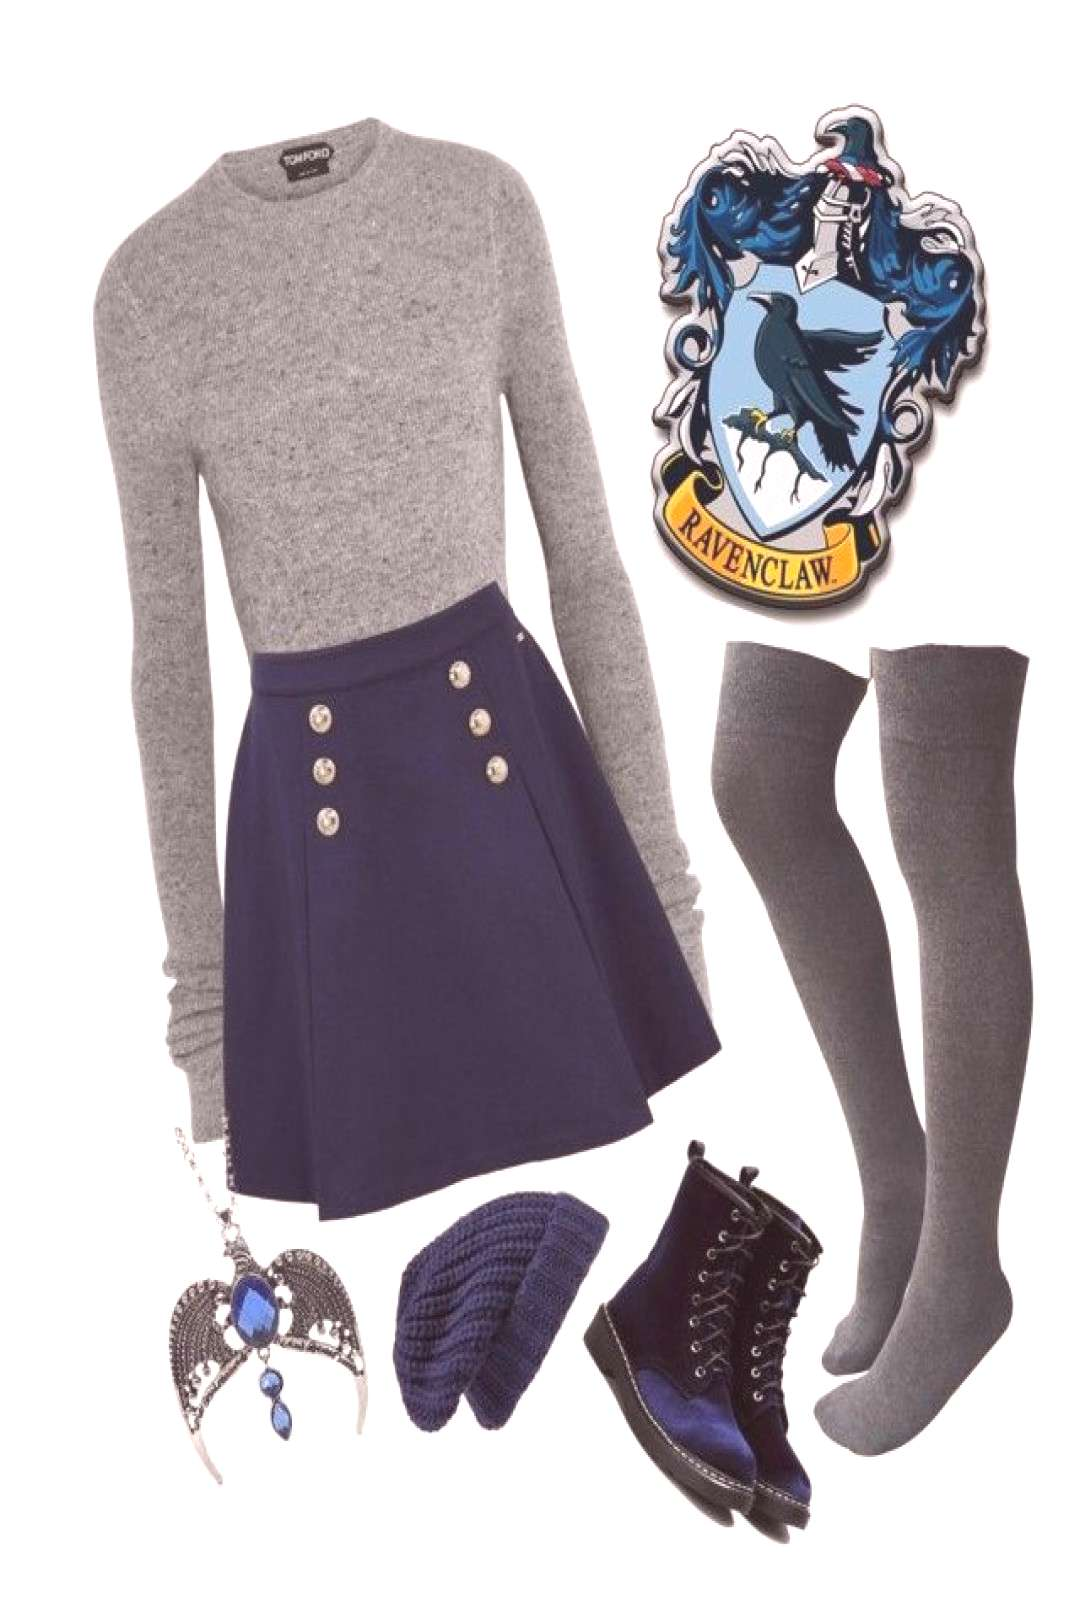 Ravenclaw Ravenclaw by closhadow ❤️ liked on Polyvore featuring Tom Ford, Tommy Hilfiger and Hi